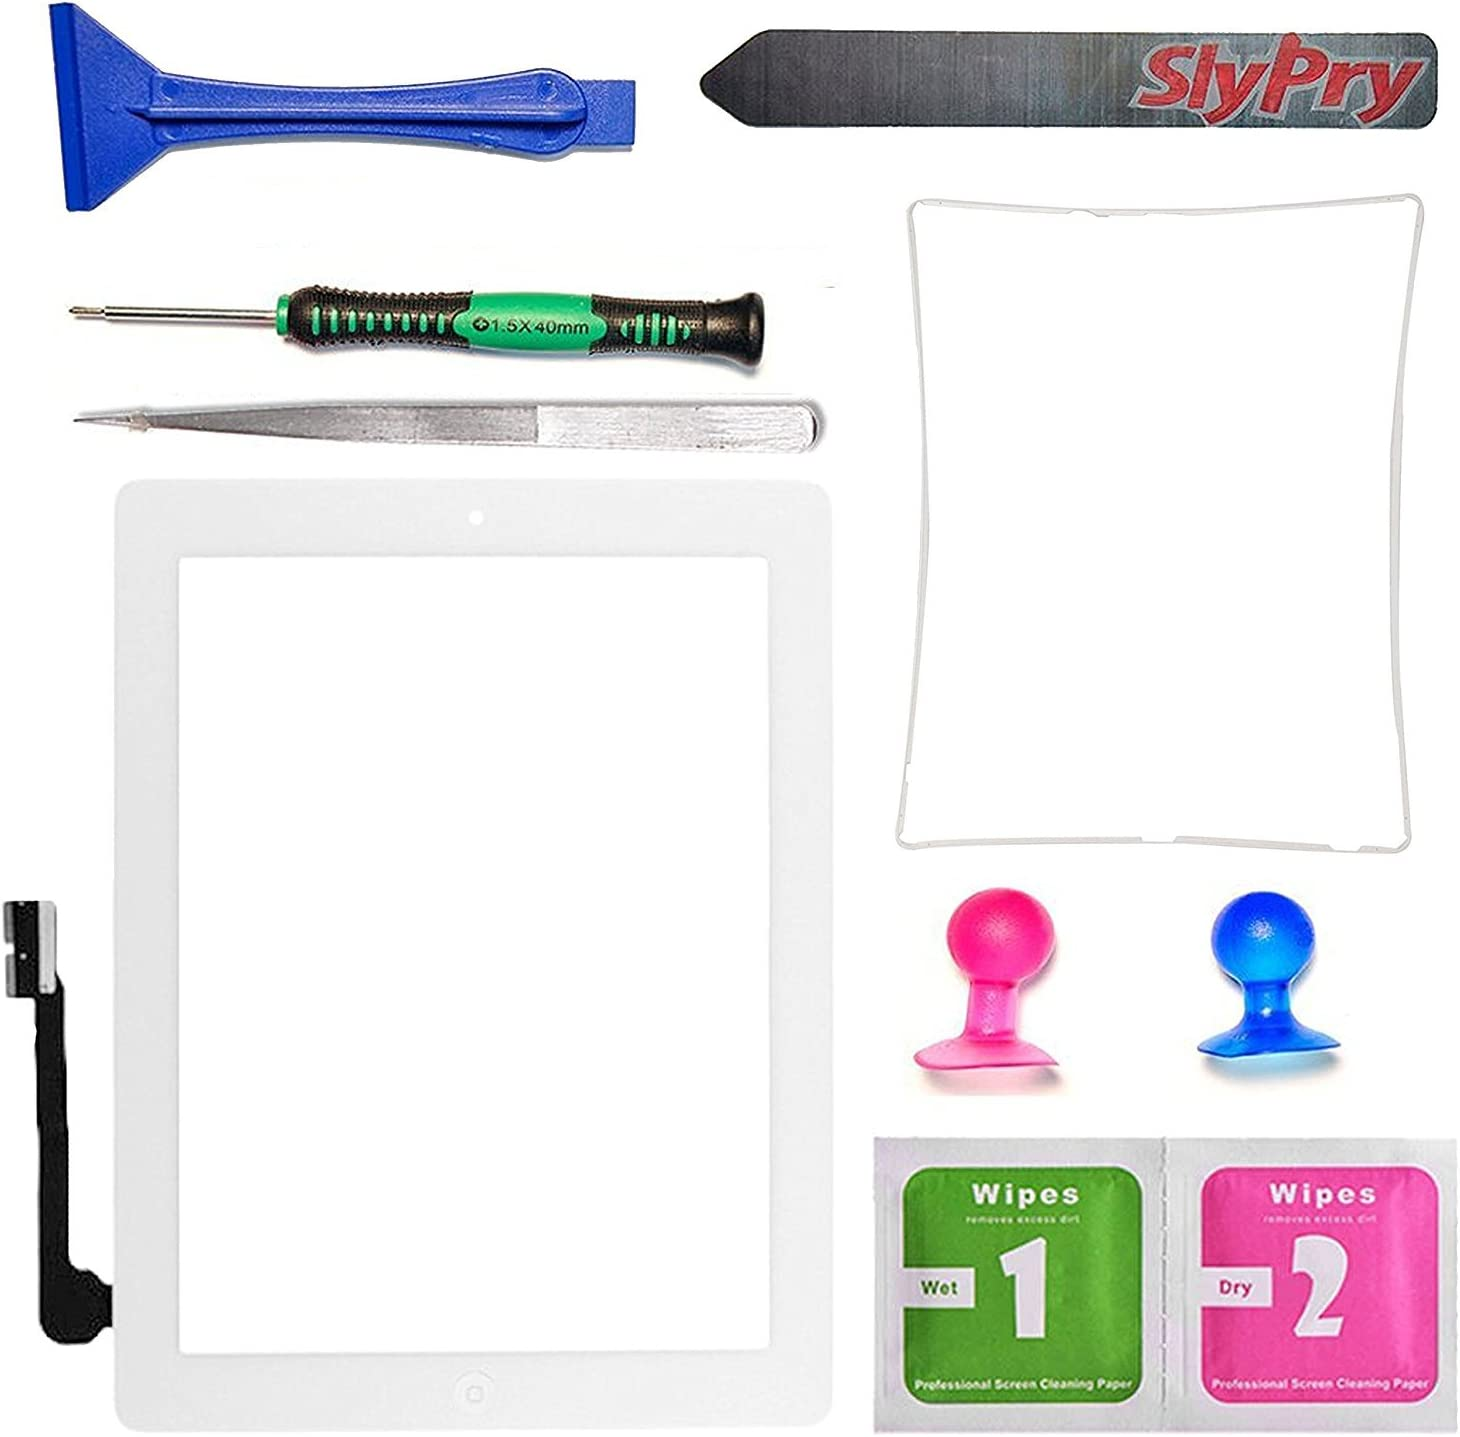 Prokit Adhesive New White iPad 3 Digitizer Touch Screen Front Glass Assembly - Includes Home Button + Camera Holder + PreInstalled Adhesive with SlyPry Tools kit